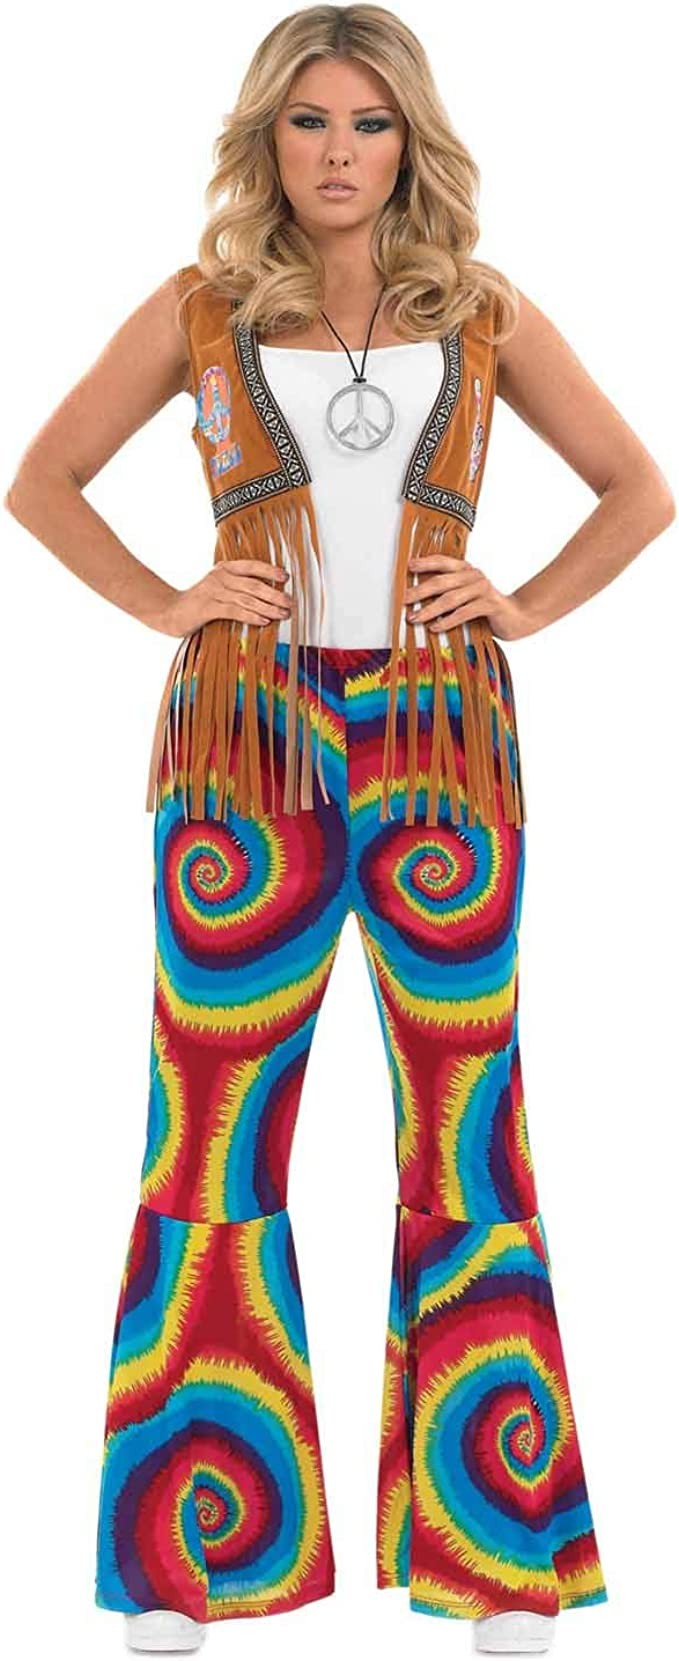 60s Pants, Jeans, Hippie, Flares, Jumpsuits fun shack Bell Bottom Costume Pants for Women 70s Hippie Flare Pants for Women Available in Sizes Small Medium Large XL XXL  AT vintagedancer.com